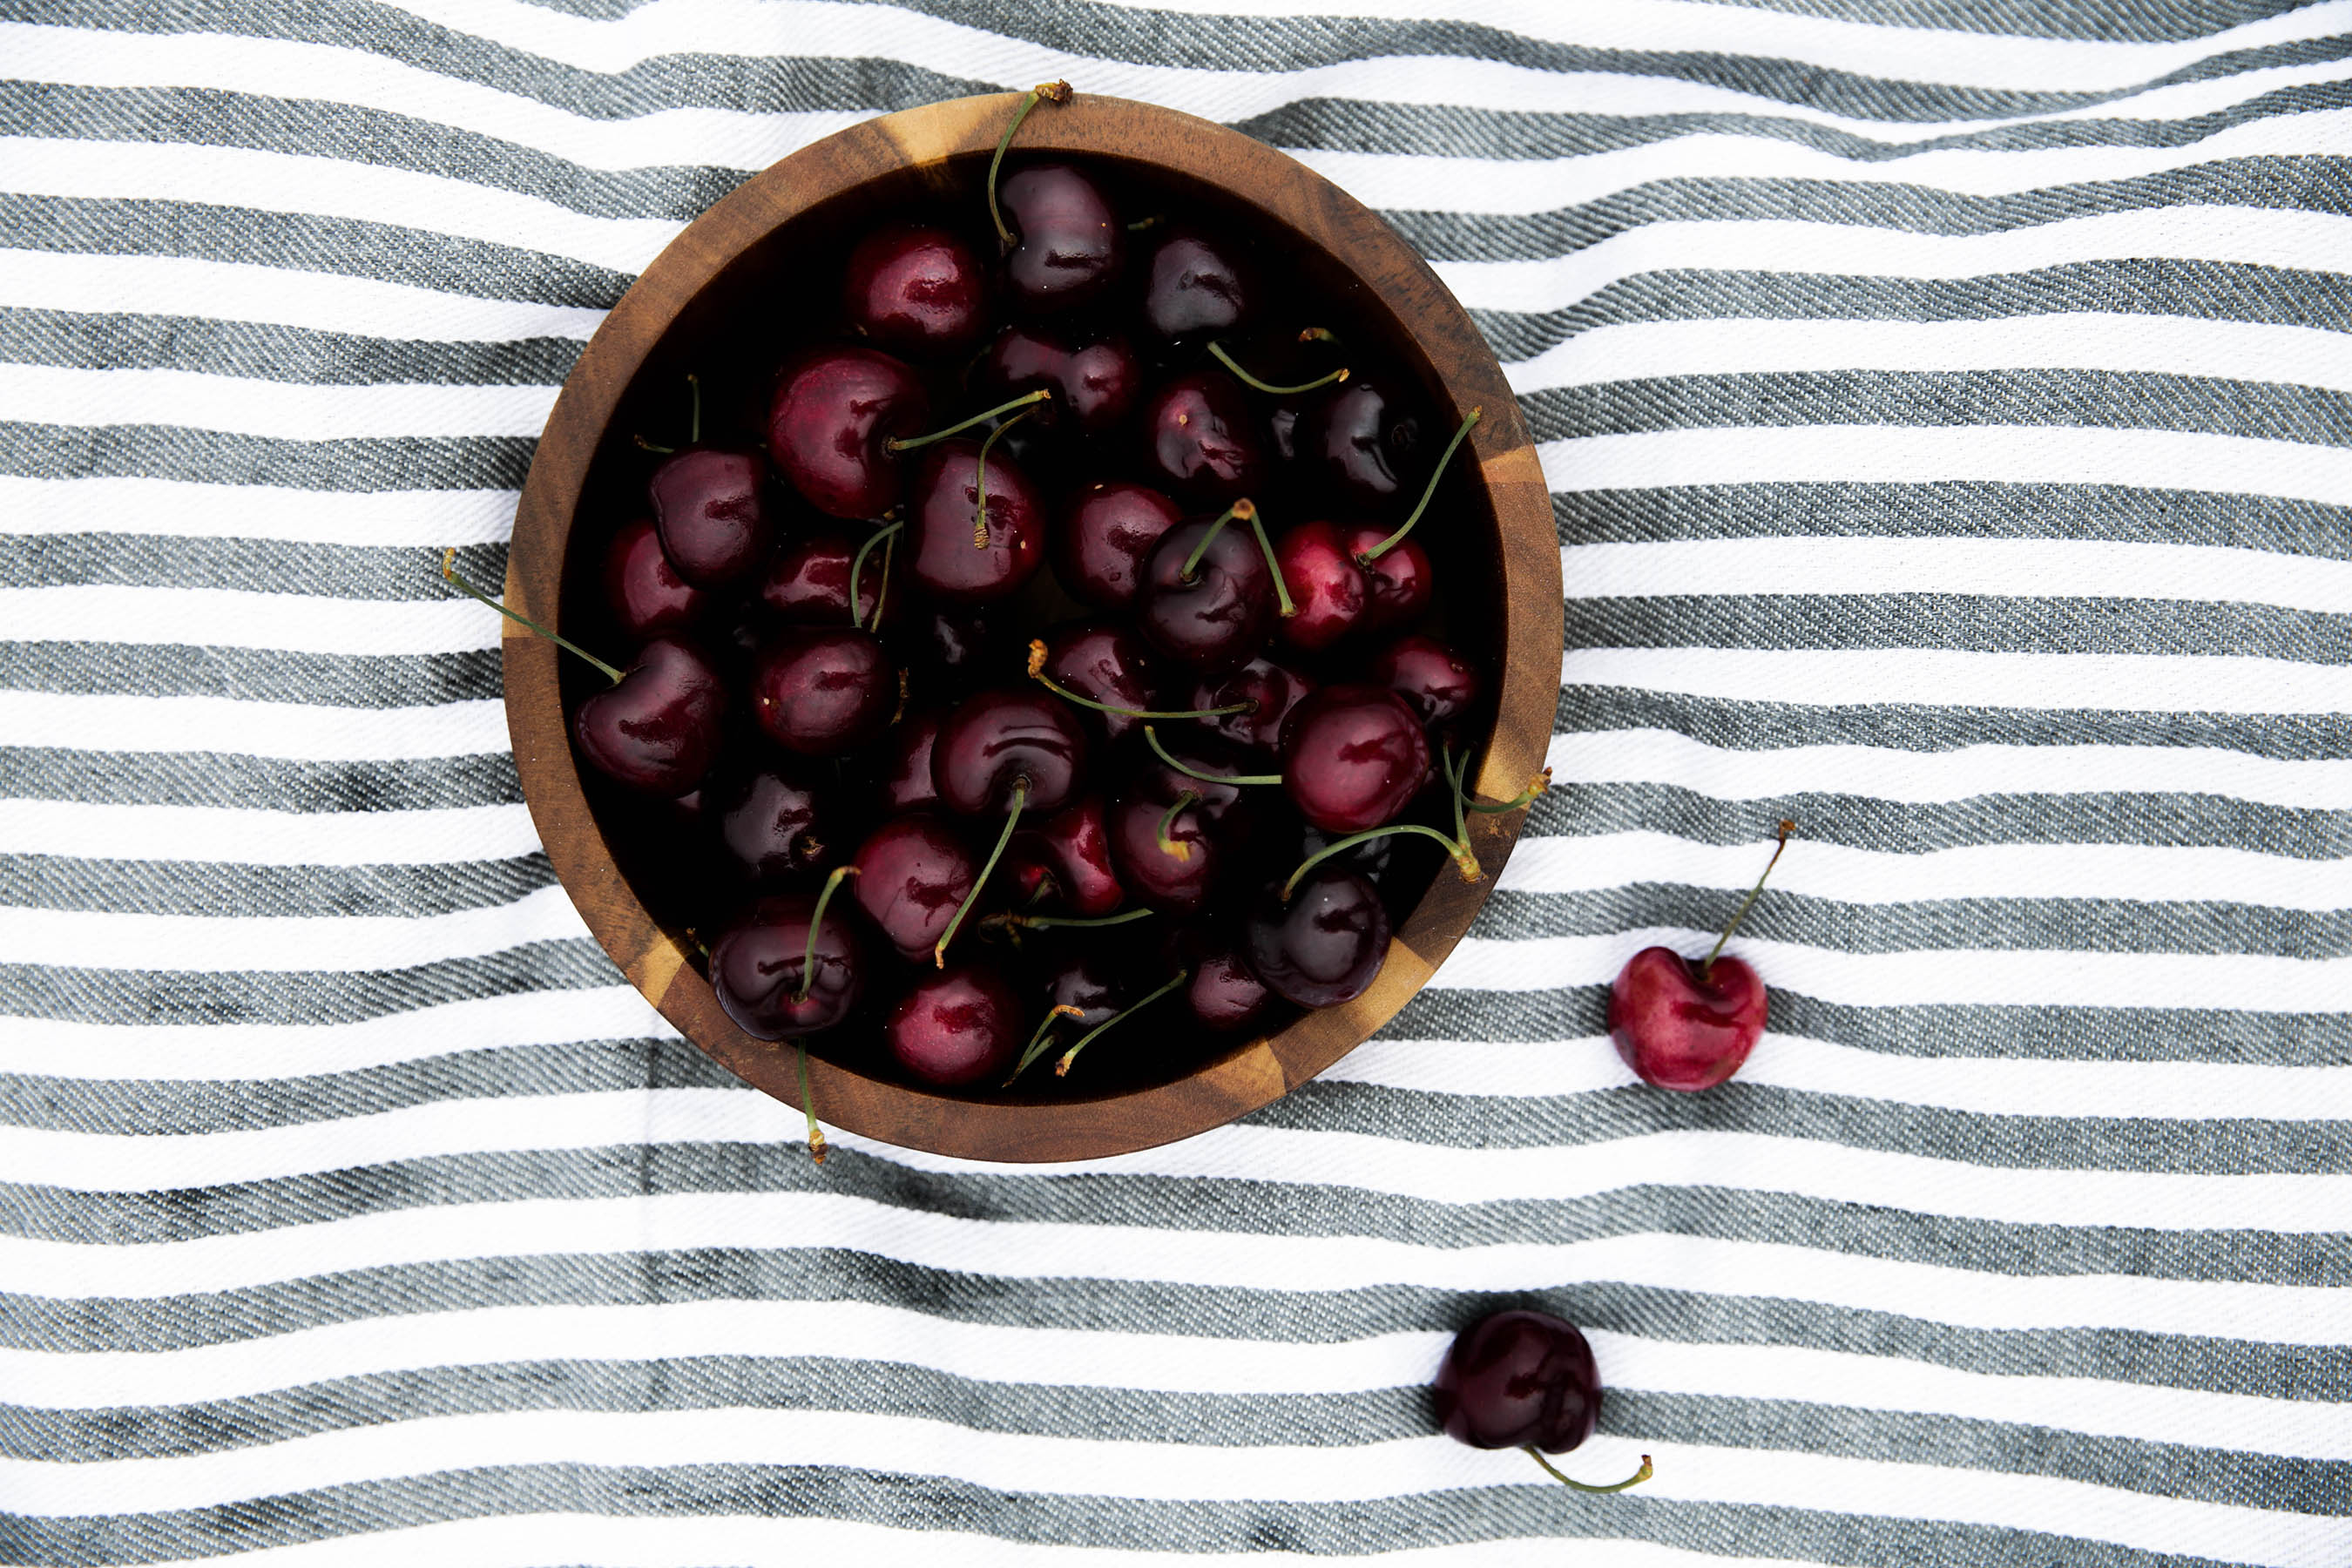 bowl of cherries on striped blanket for summer picnic